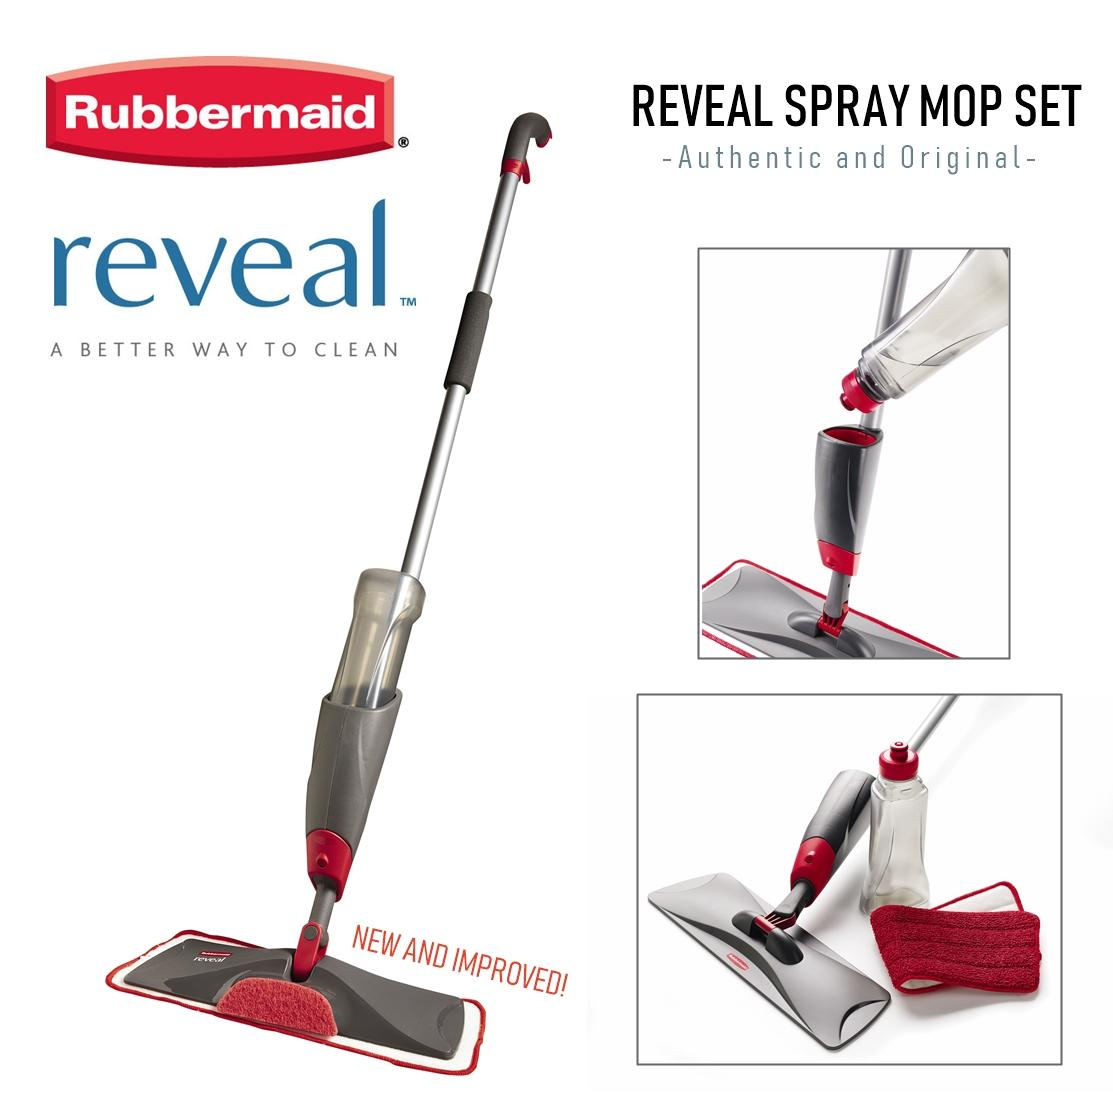 Rubbermaid Reveal Microfibre Spray Mop By The Home Shoppe.